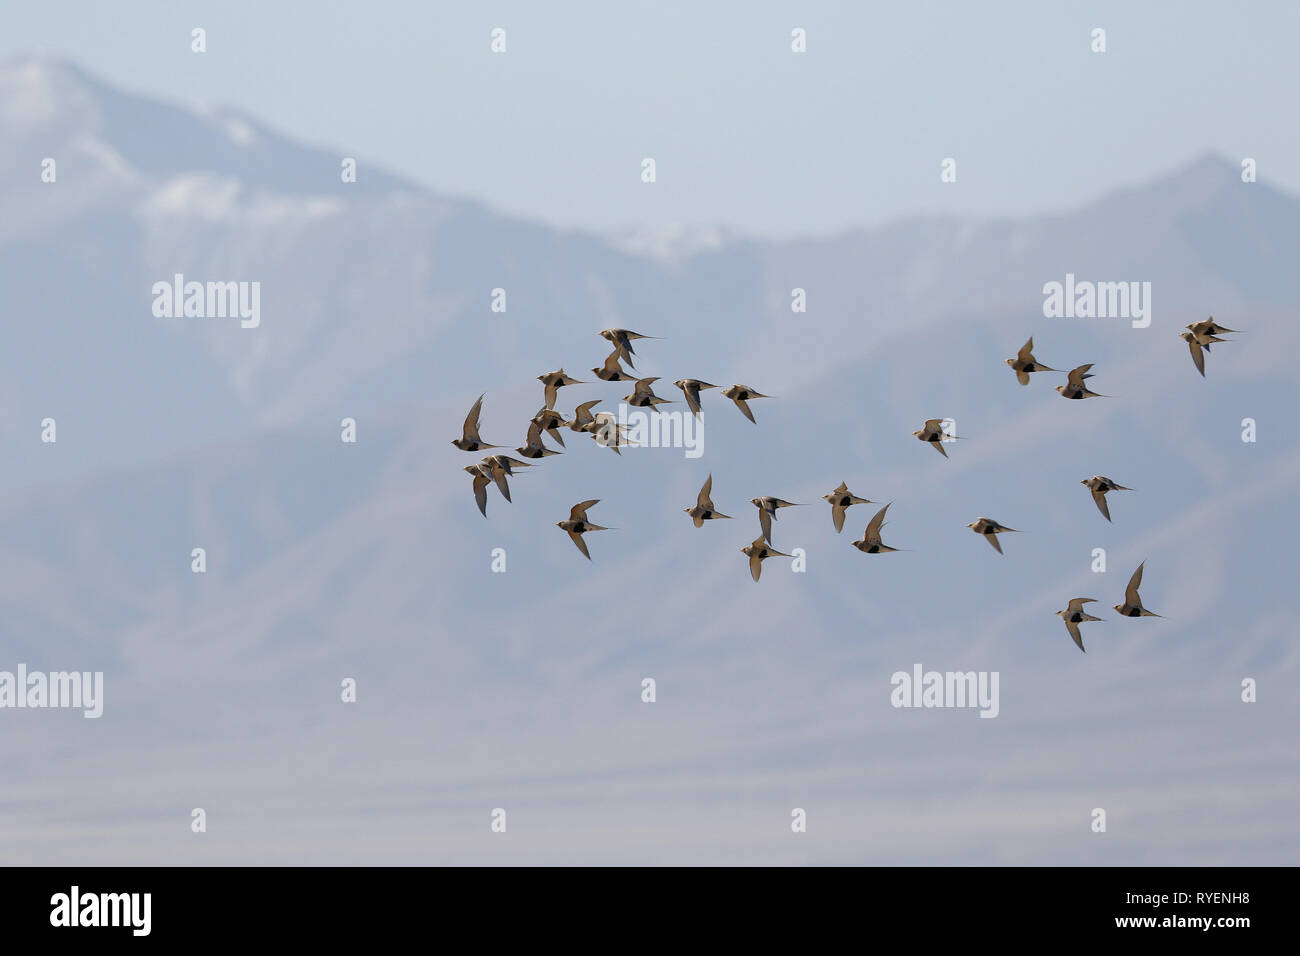 Pallas's Sandgrouse, Syrrhaptes paradoxus, flock in flight - Stock Image